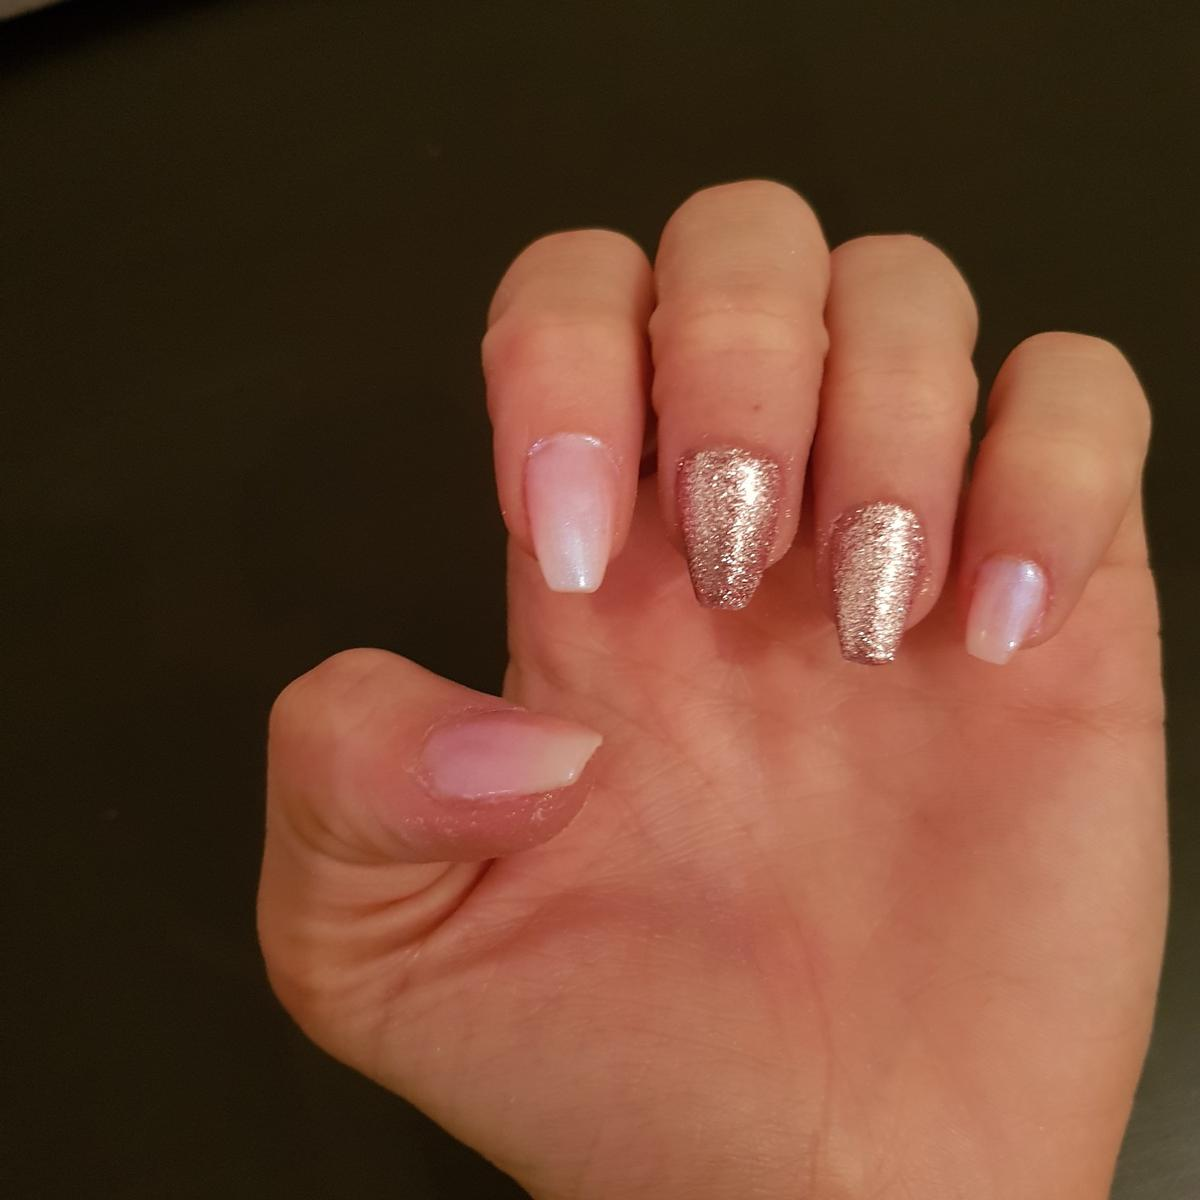 Acrylic Nails In Wv4 Wolverhampton For 20 00 For Sale Shpock